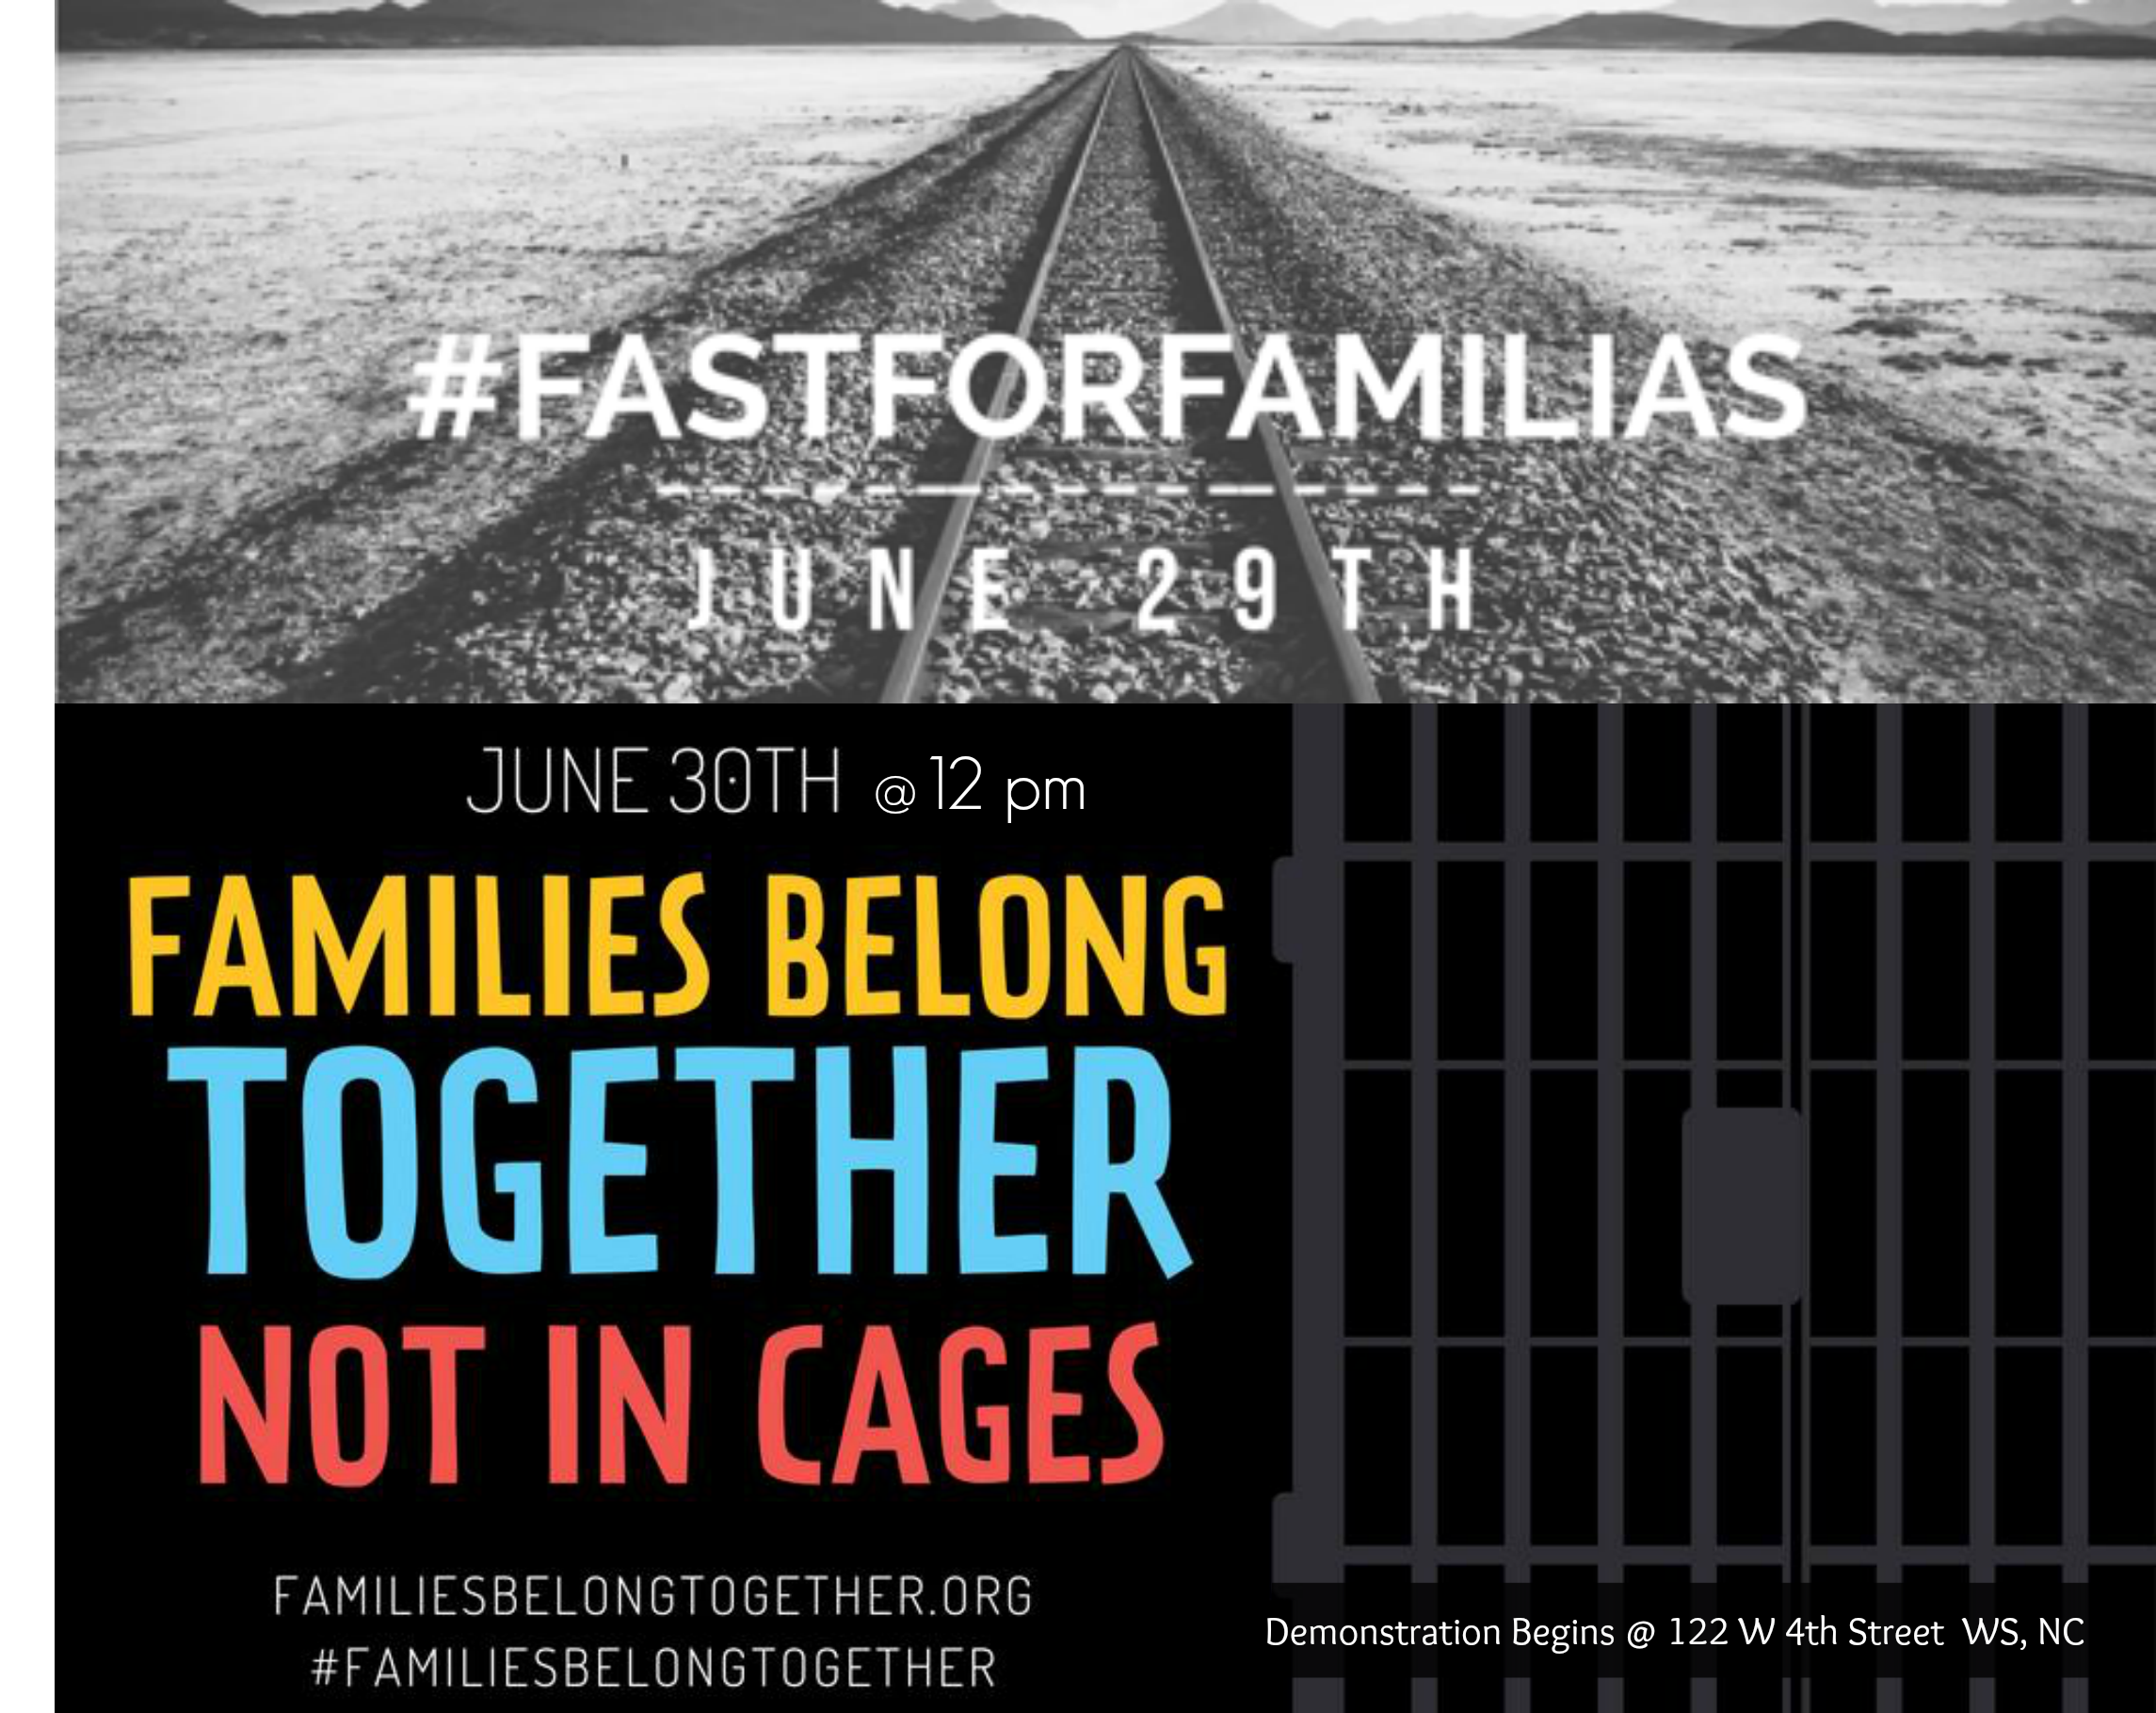 Combined Flyers fasting for families & families belong together